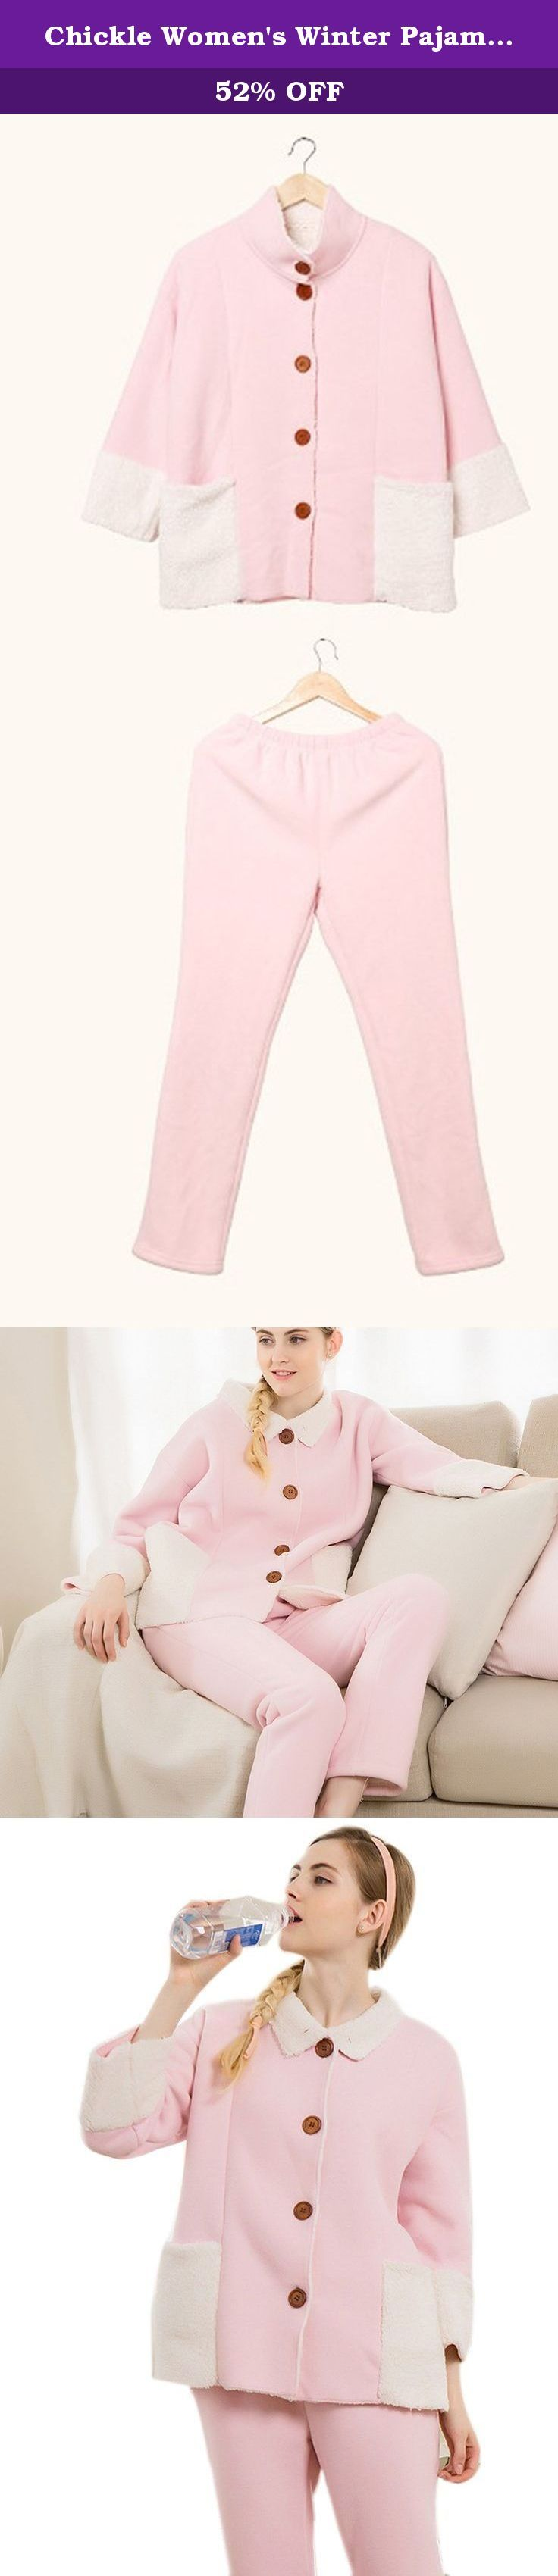 Chickle Women's Winter Pajamas Thermal Fleece Home Sleepwear Set Pink. Home sleepwear set featuring thermal fleece pajama designed with 3/4 sleeves and extra large pocket,candy color contrast sweety housecoat style for girls and ladies.